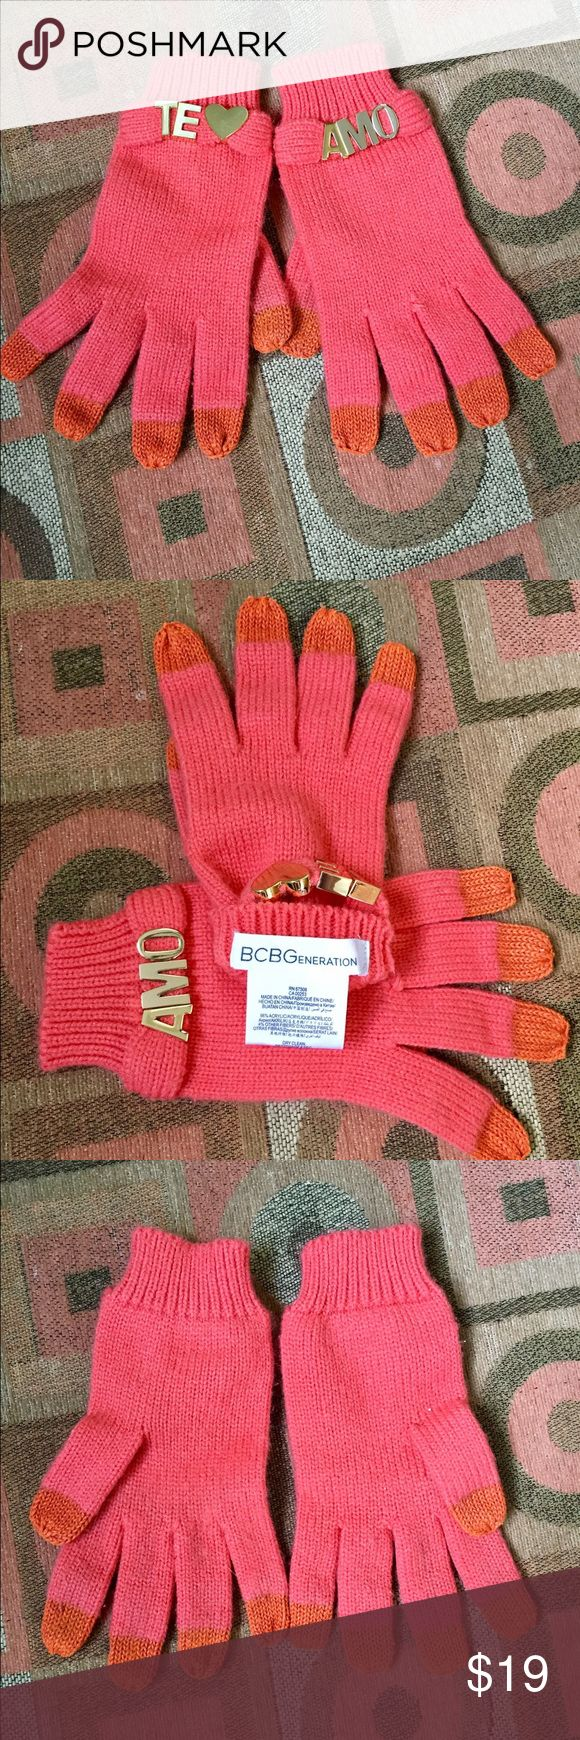 BCBG pink and orange TE AMO gloves ✋ These are like new and maybe worn once or twice BCBG pink and orange gloves✋ with one saying TE❤️ and the other AMO! Super cute must have for cold ❄️ BCBGeneration Accessories Gloves & Mittens